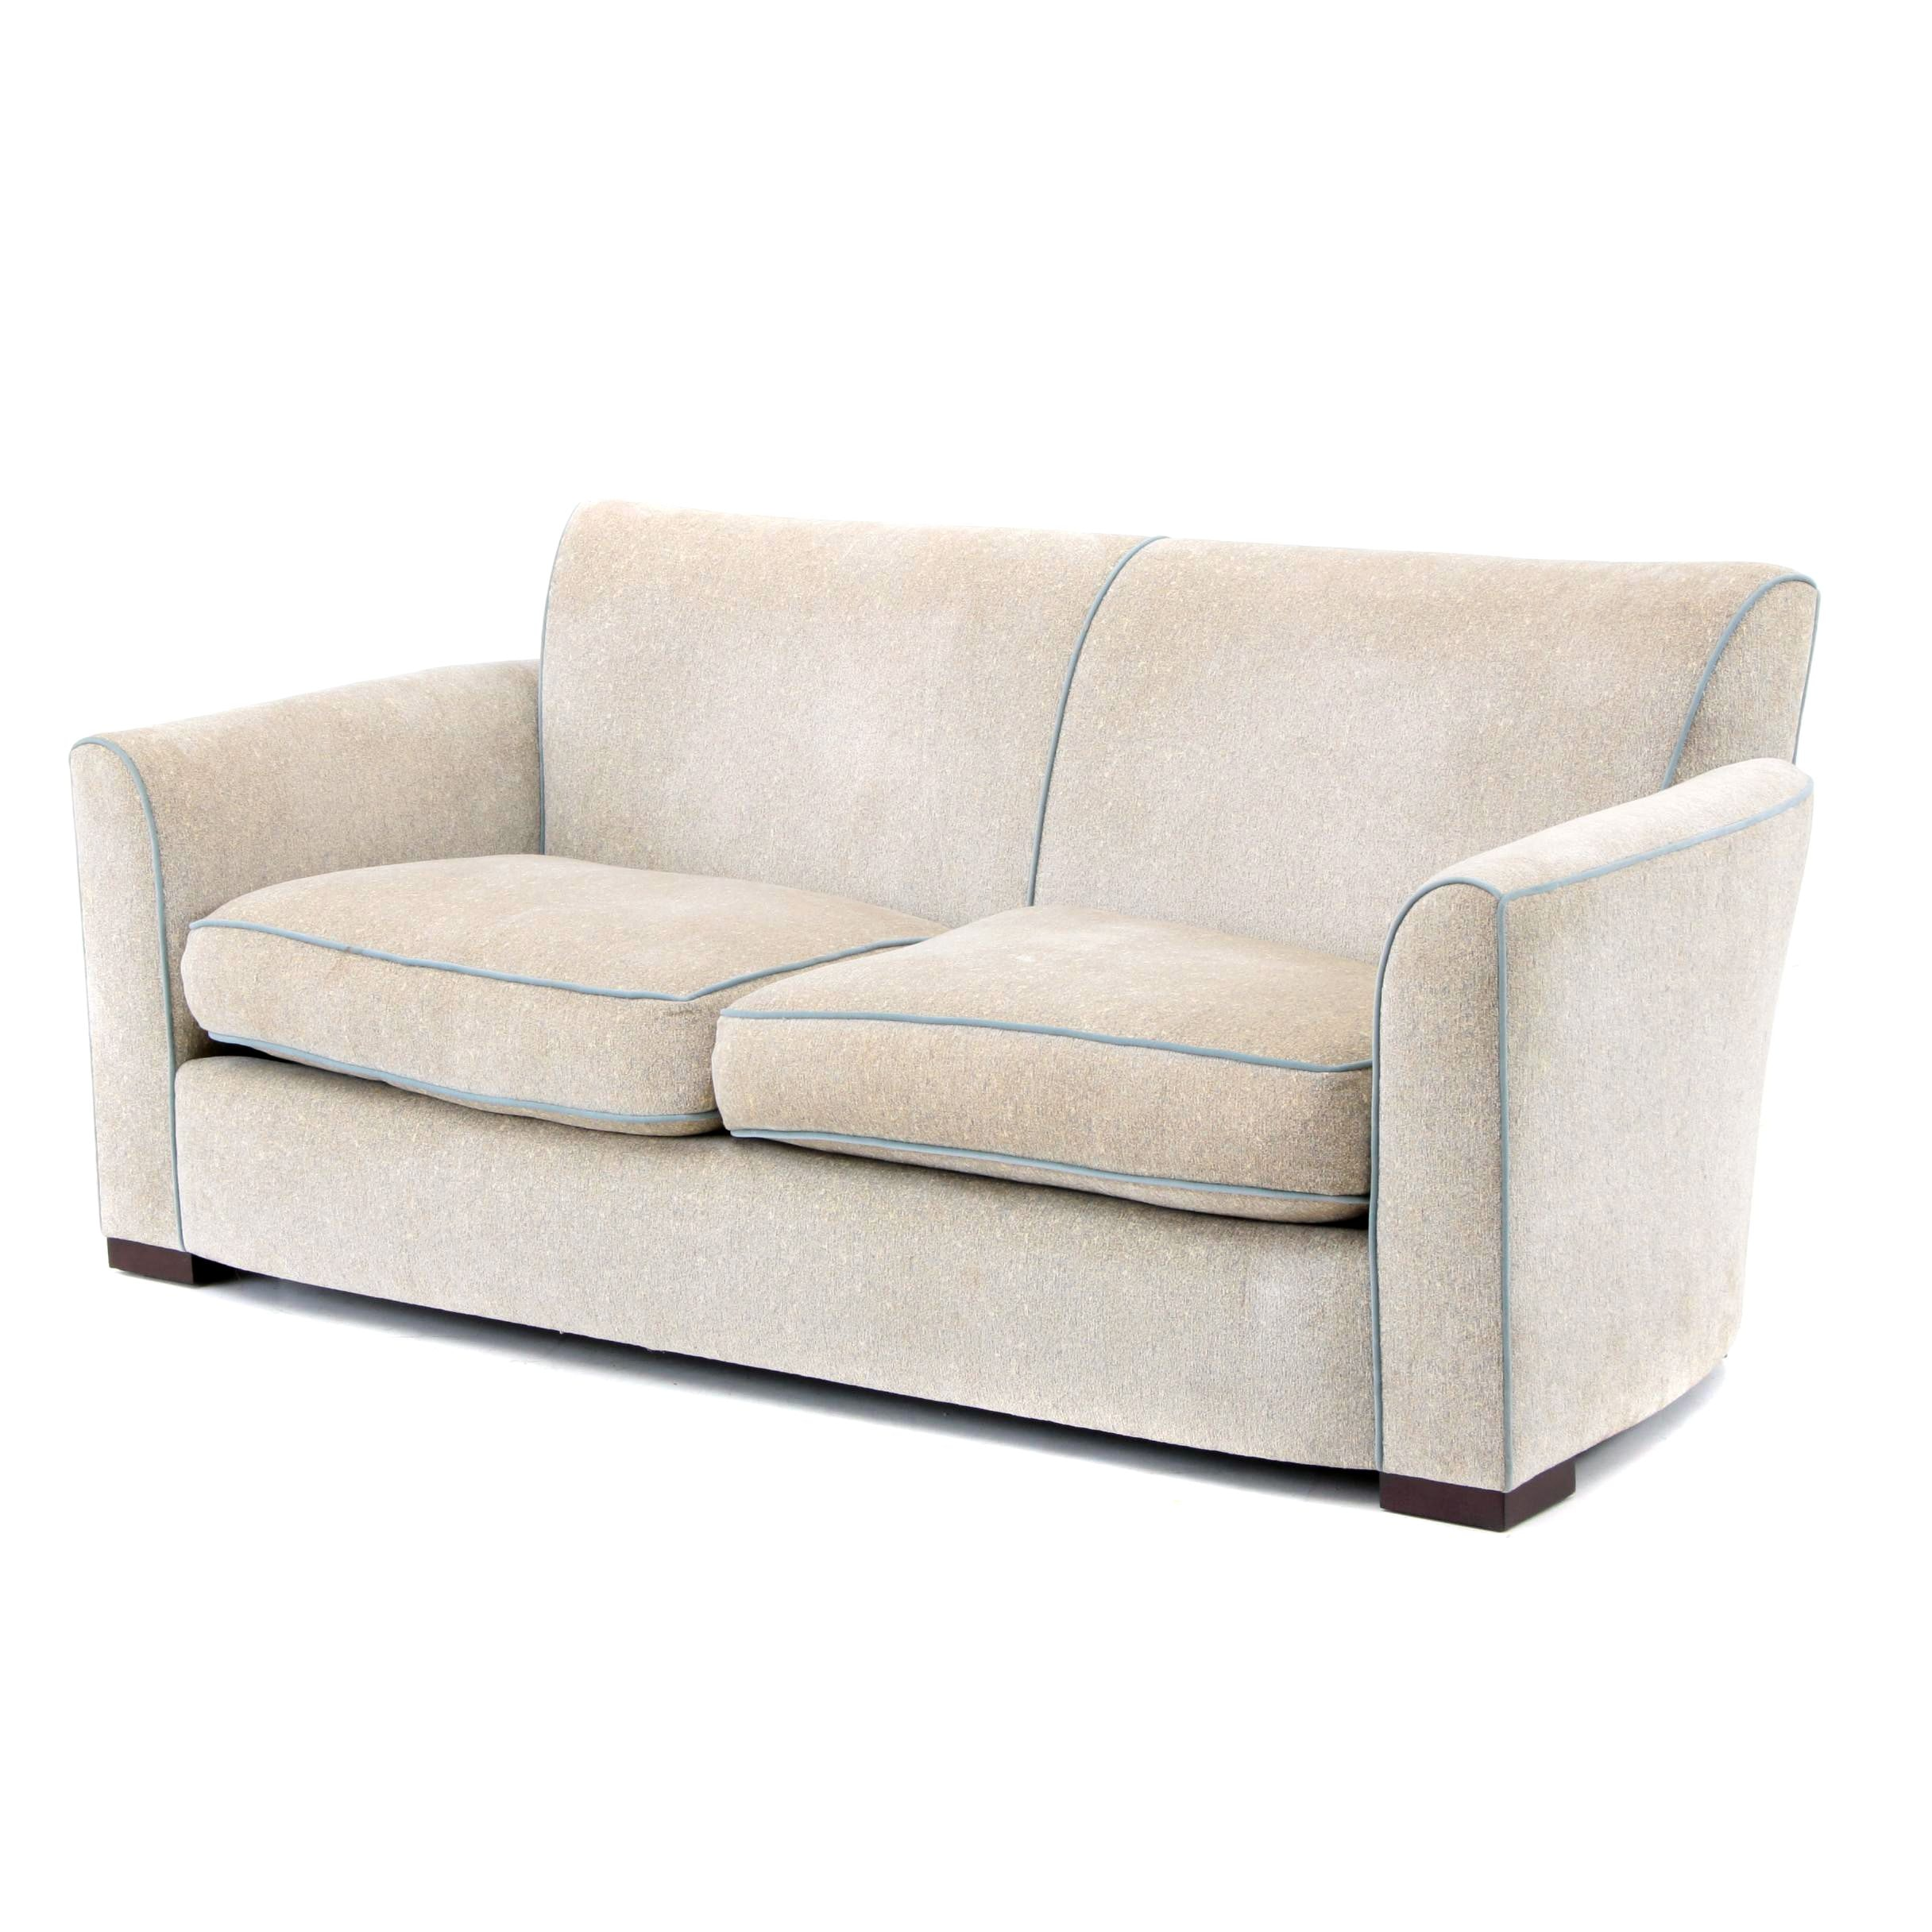 Donghia Upholstered Love Seat